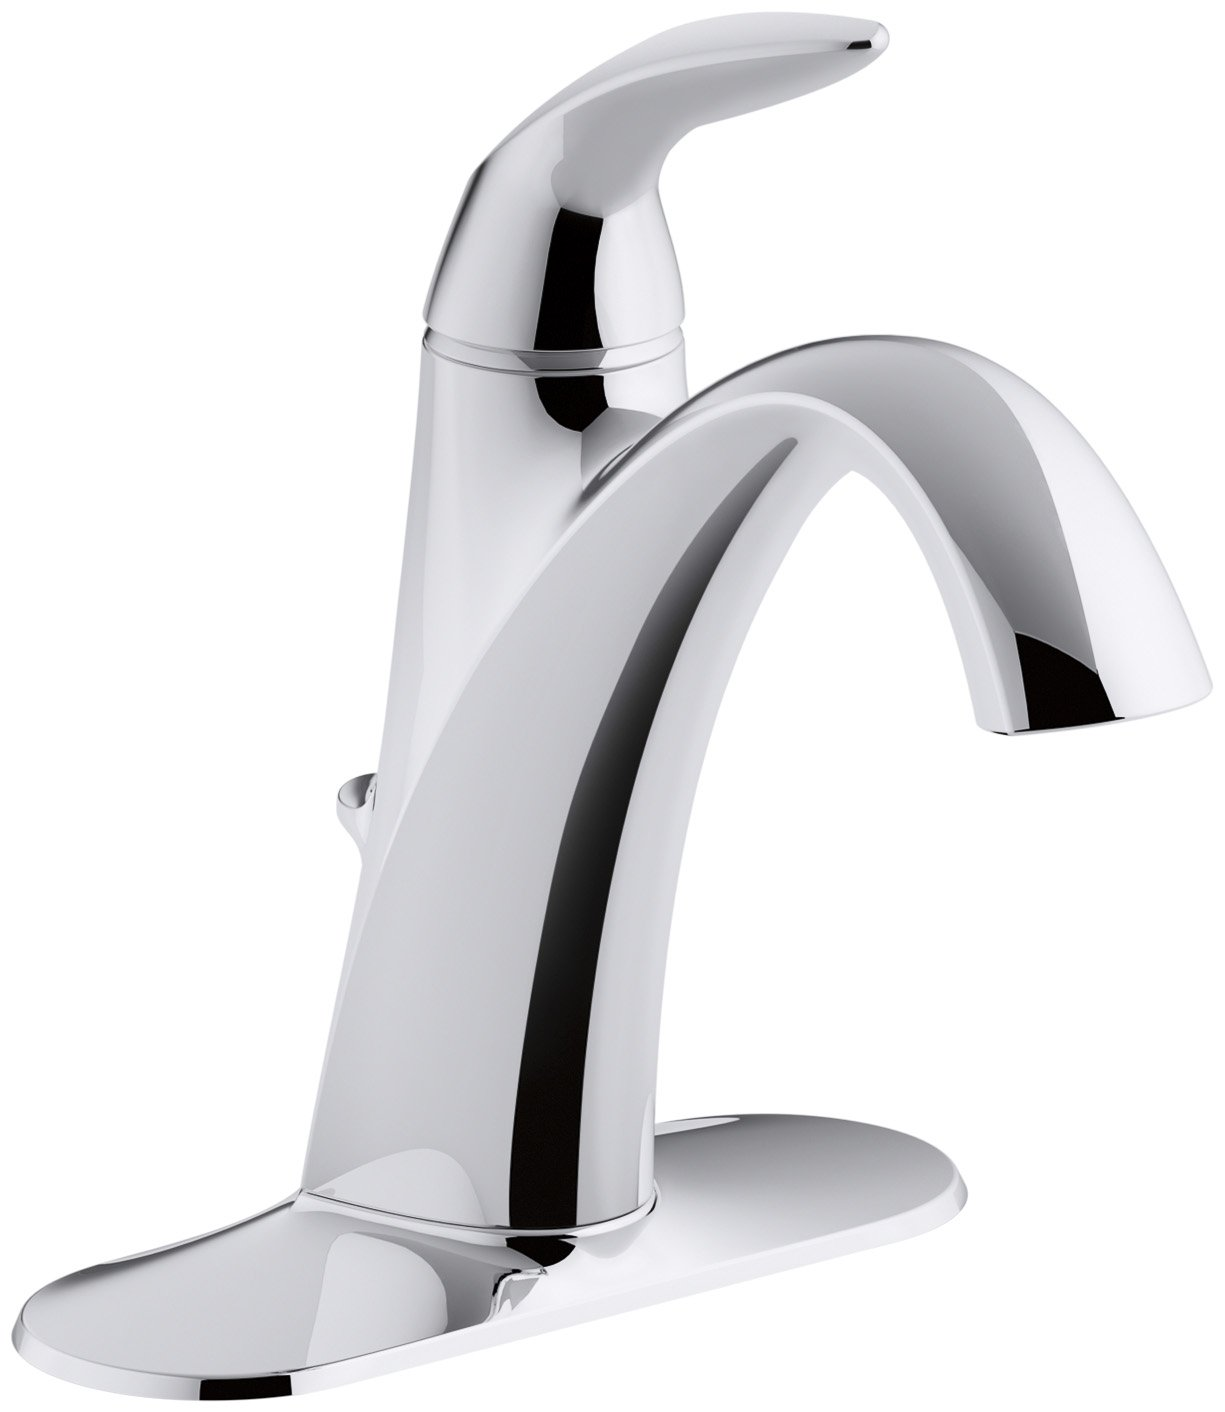 l bathroom faucet faucets sink hole lavatory get a single